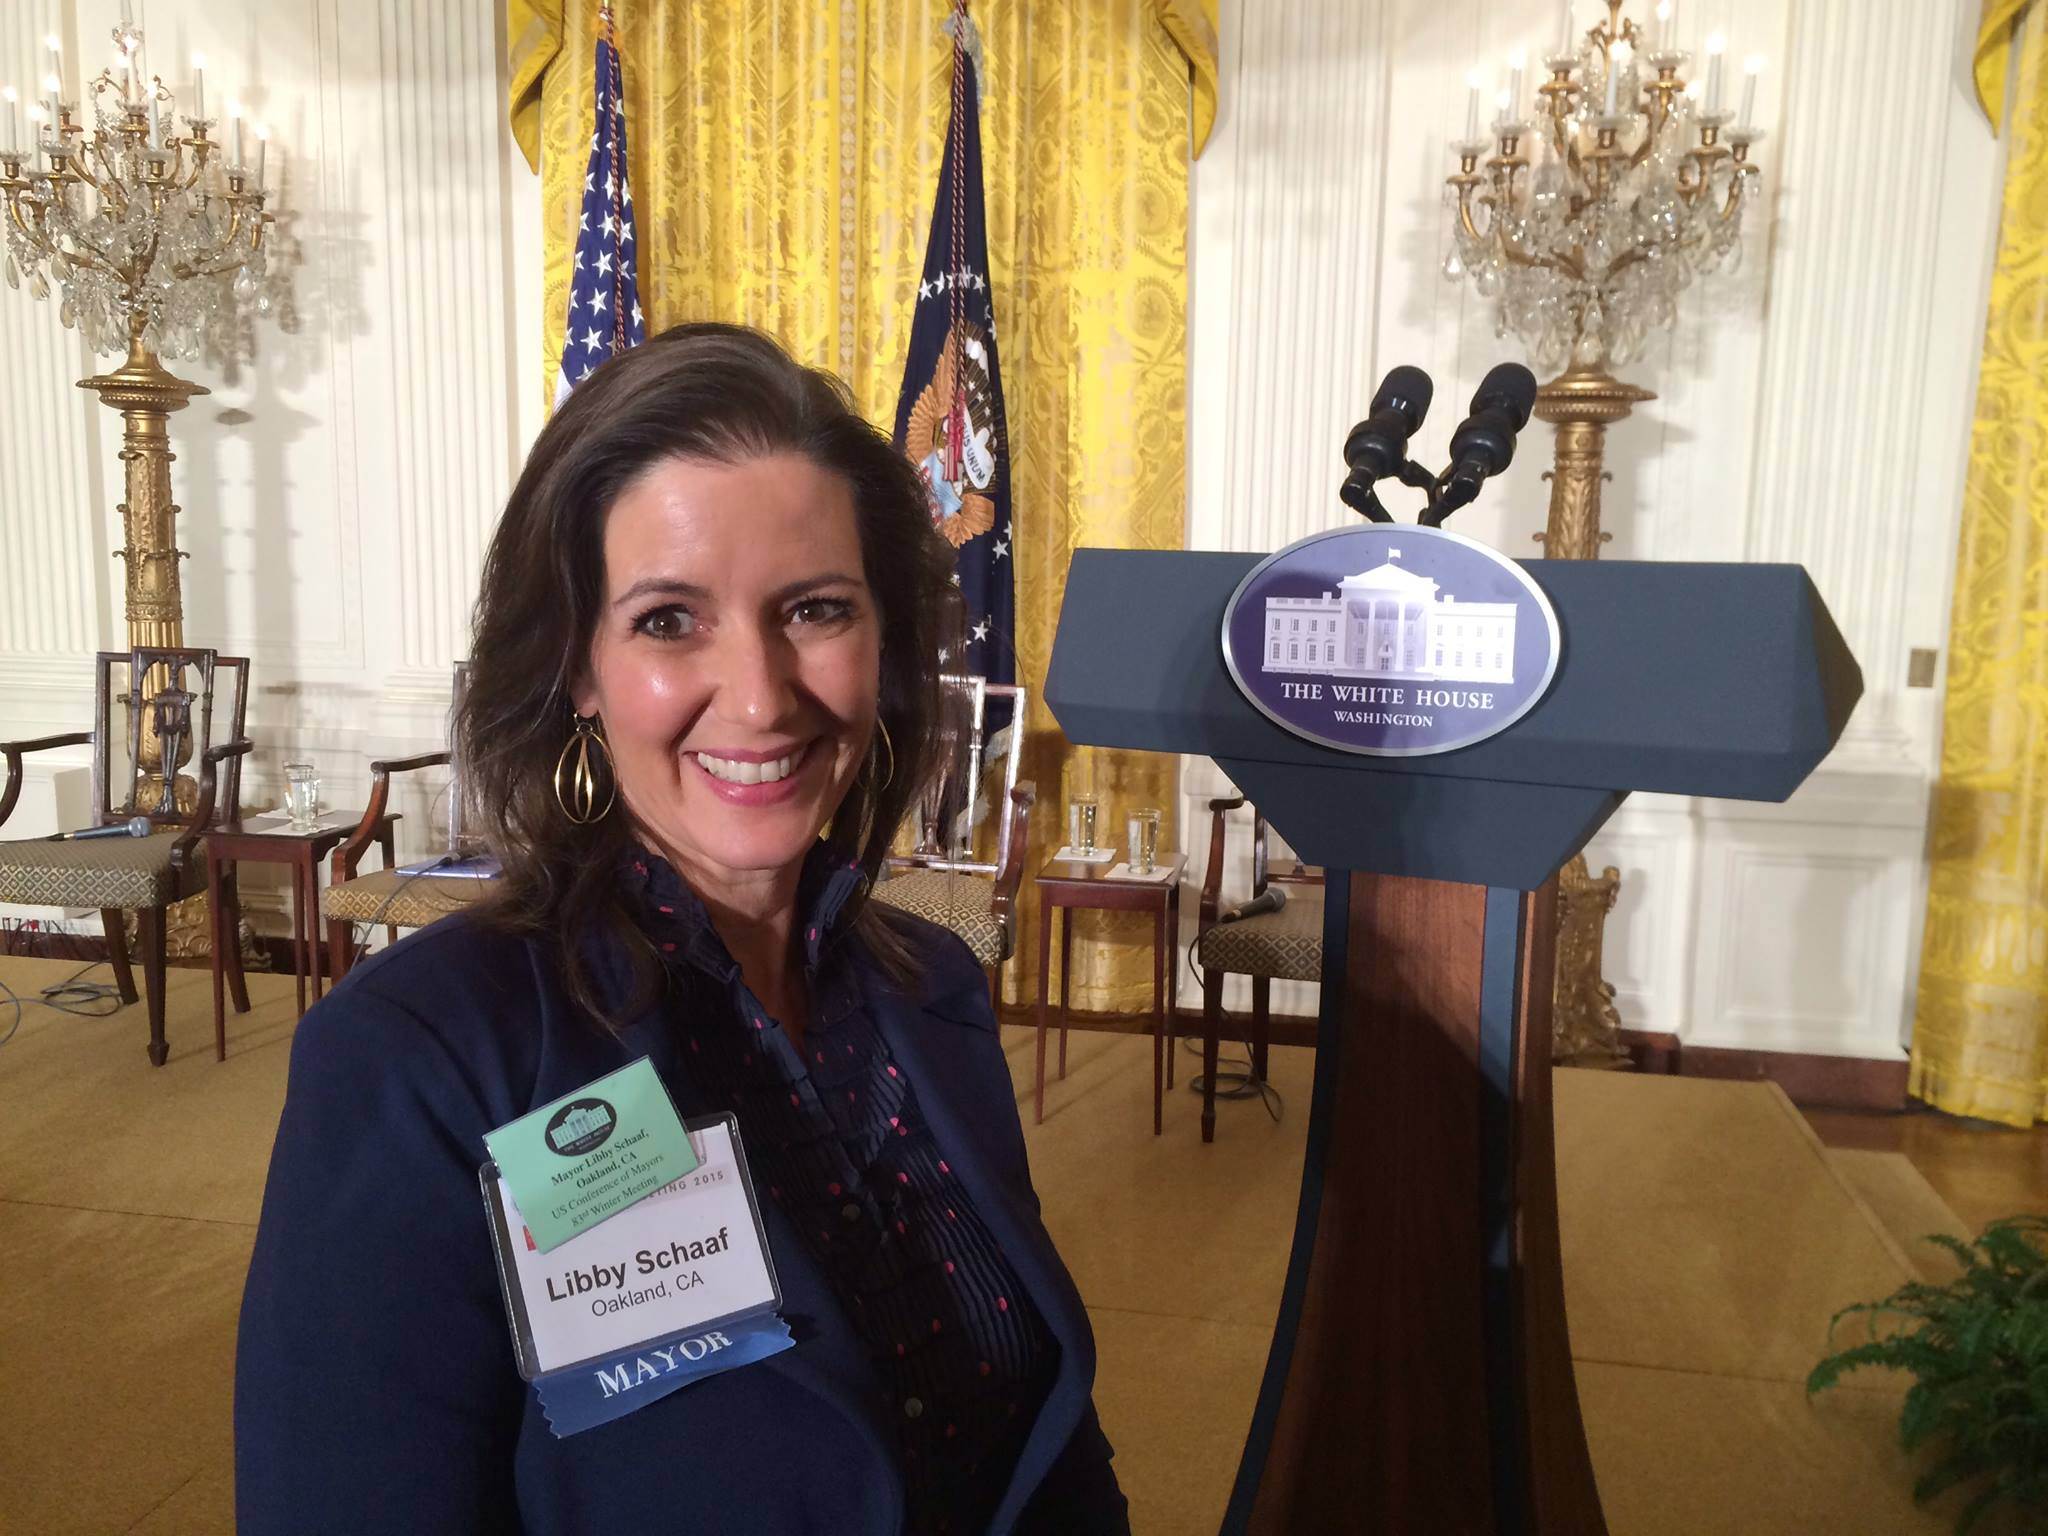 Mayor Schaaf was at The White House for The U.S. Conference Of Mayors